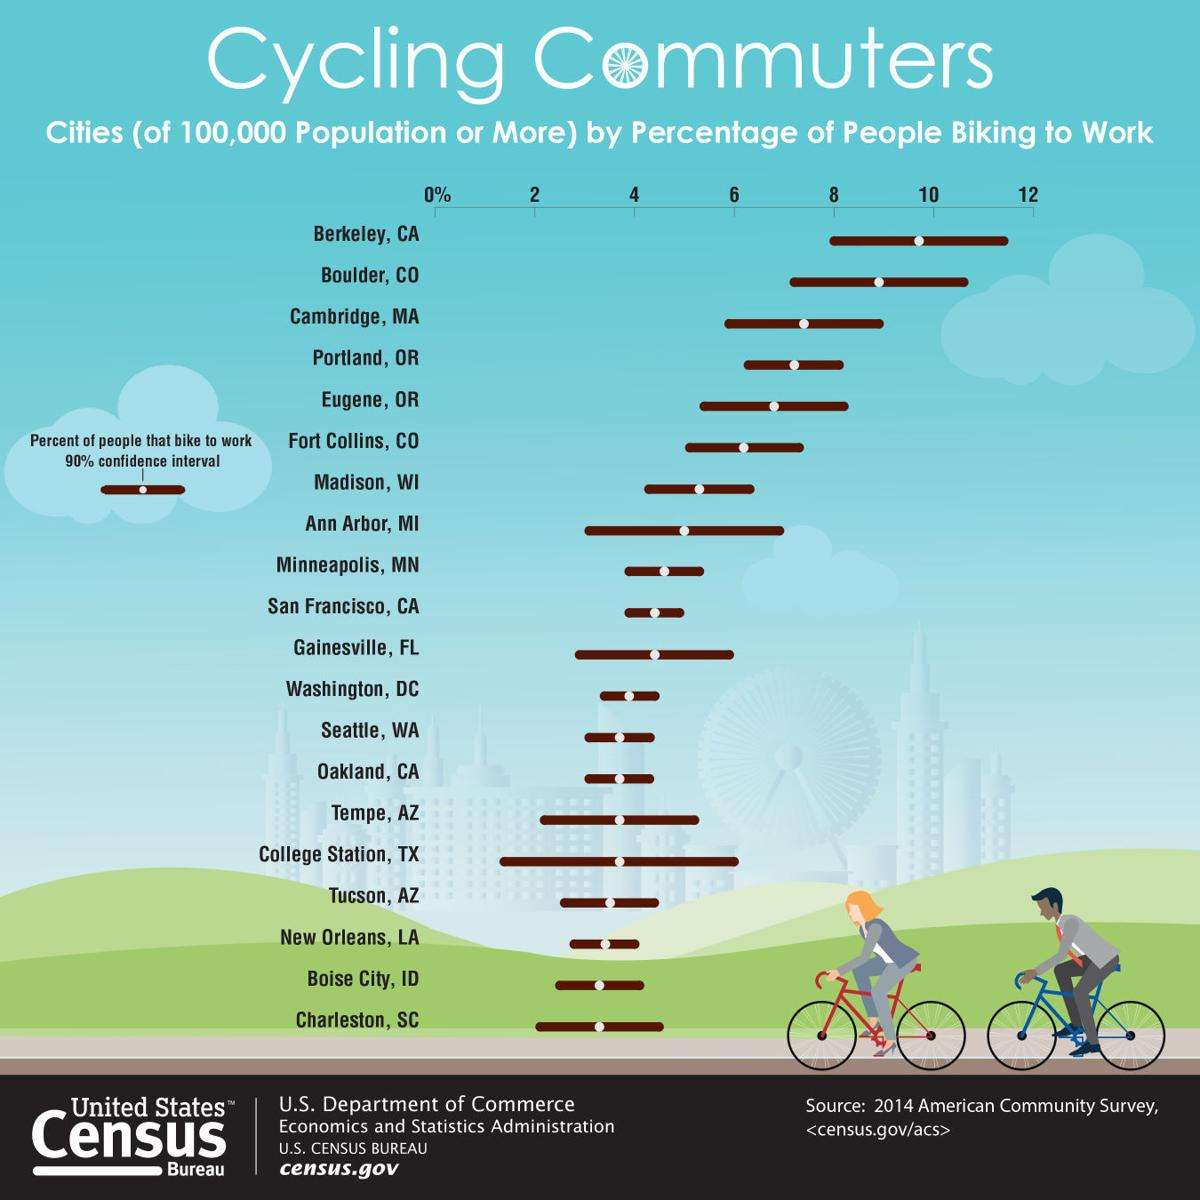 Cycling Commuters infographic